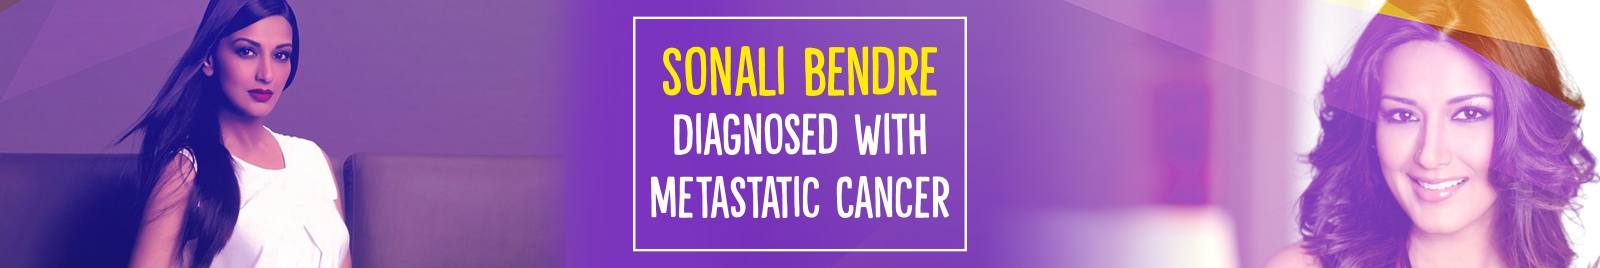 Sonali Bendre Diagnosed With Metastatic Cancer